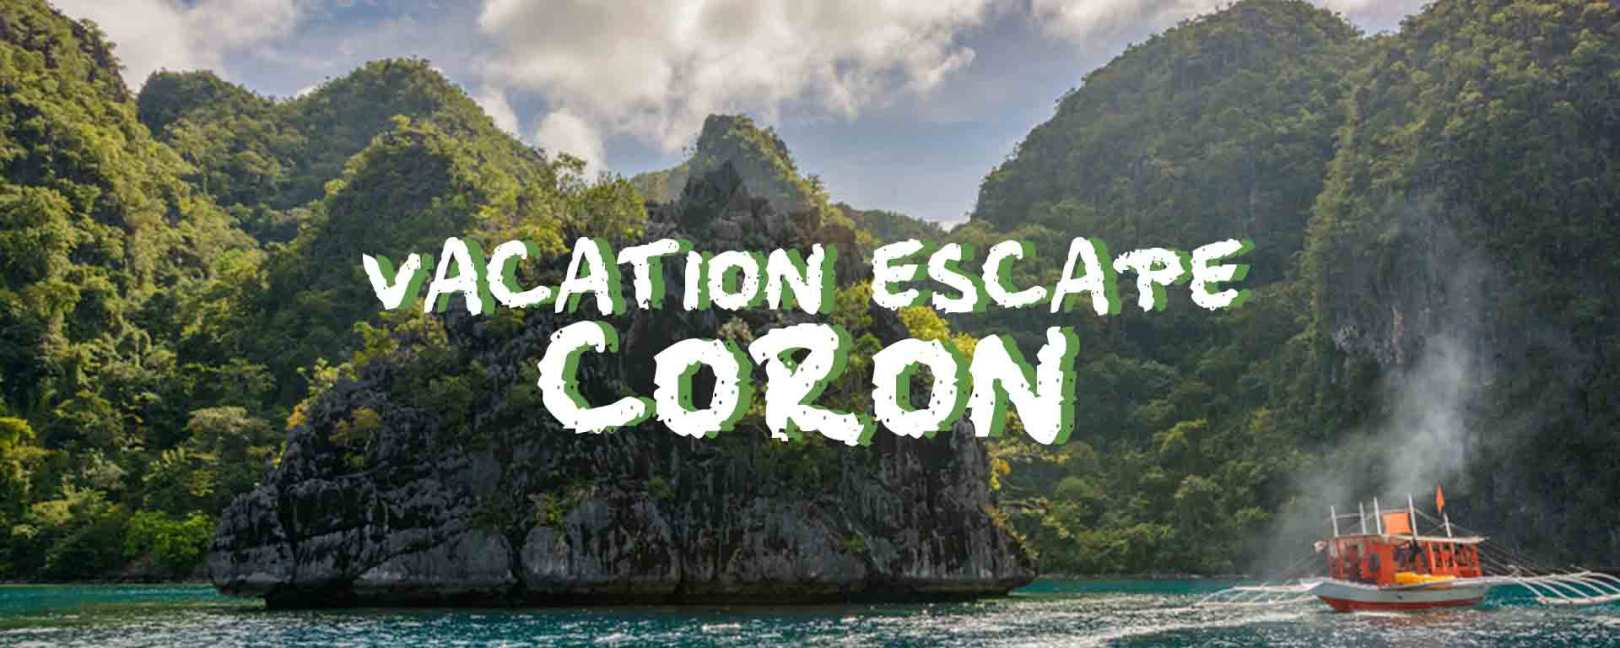 Coron-Vacation-Escape